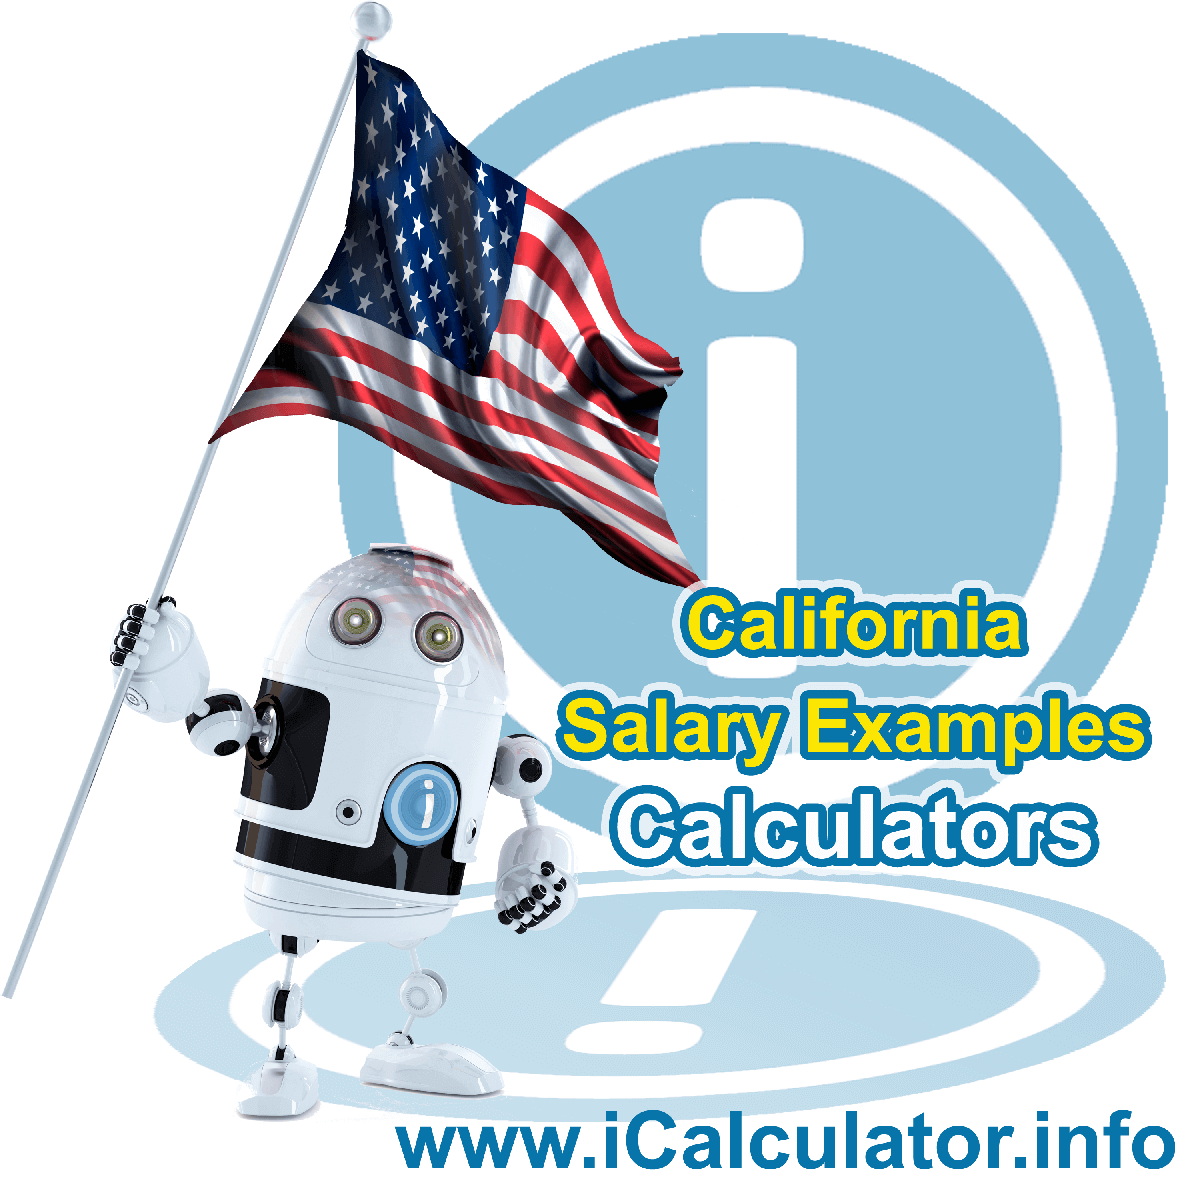 California Salary Example for $60,000.00 in 2021 | iCalculator™ | $60,000.00 salary example for employee and employer paying California State tincome taxes. Detailed salary after tax calculation including California State Tax, Federal State Tax, Medicare Deductions, Social Security, Capital Gains and other income tax and salary deductions complete with supporting California state tax tables